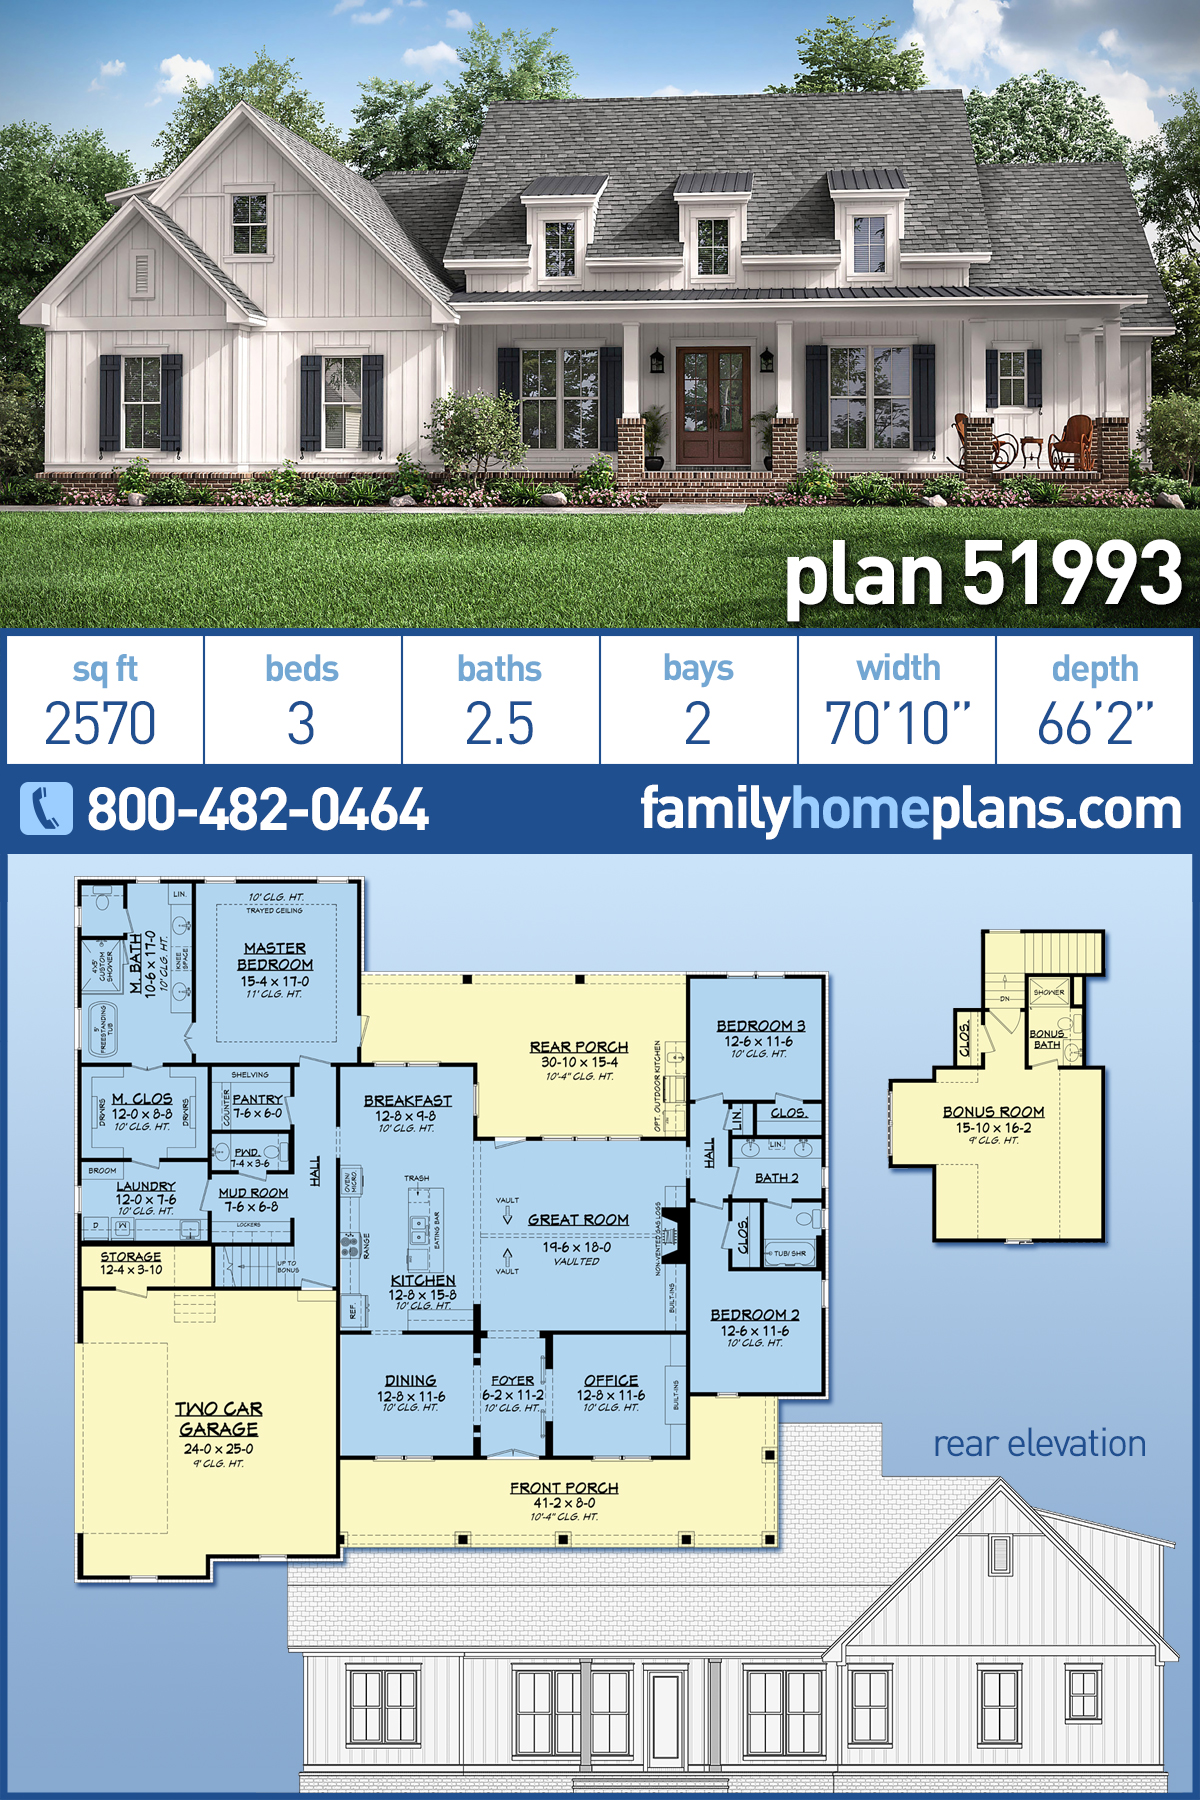 Country, Craftsman, Traditional House Plan 51993 with 3 Beds, 3 Baths, 2 Car Garage